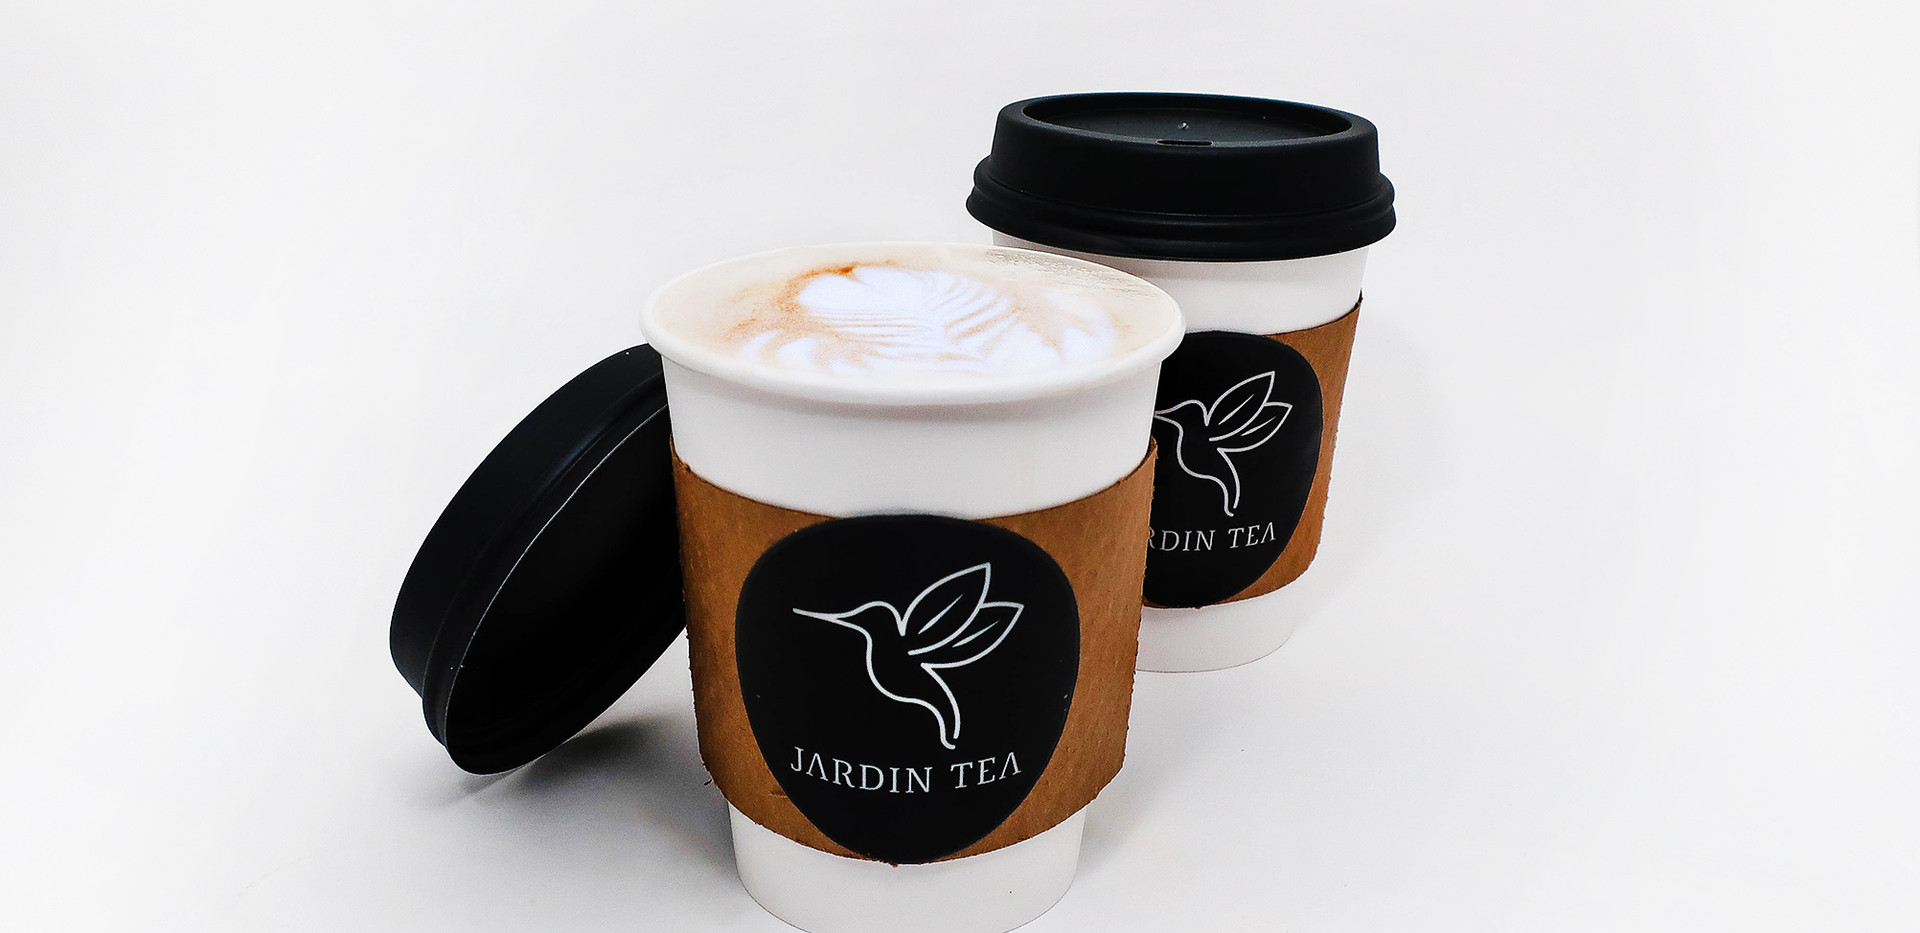 Jardin Tea Hot Coffee Latte